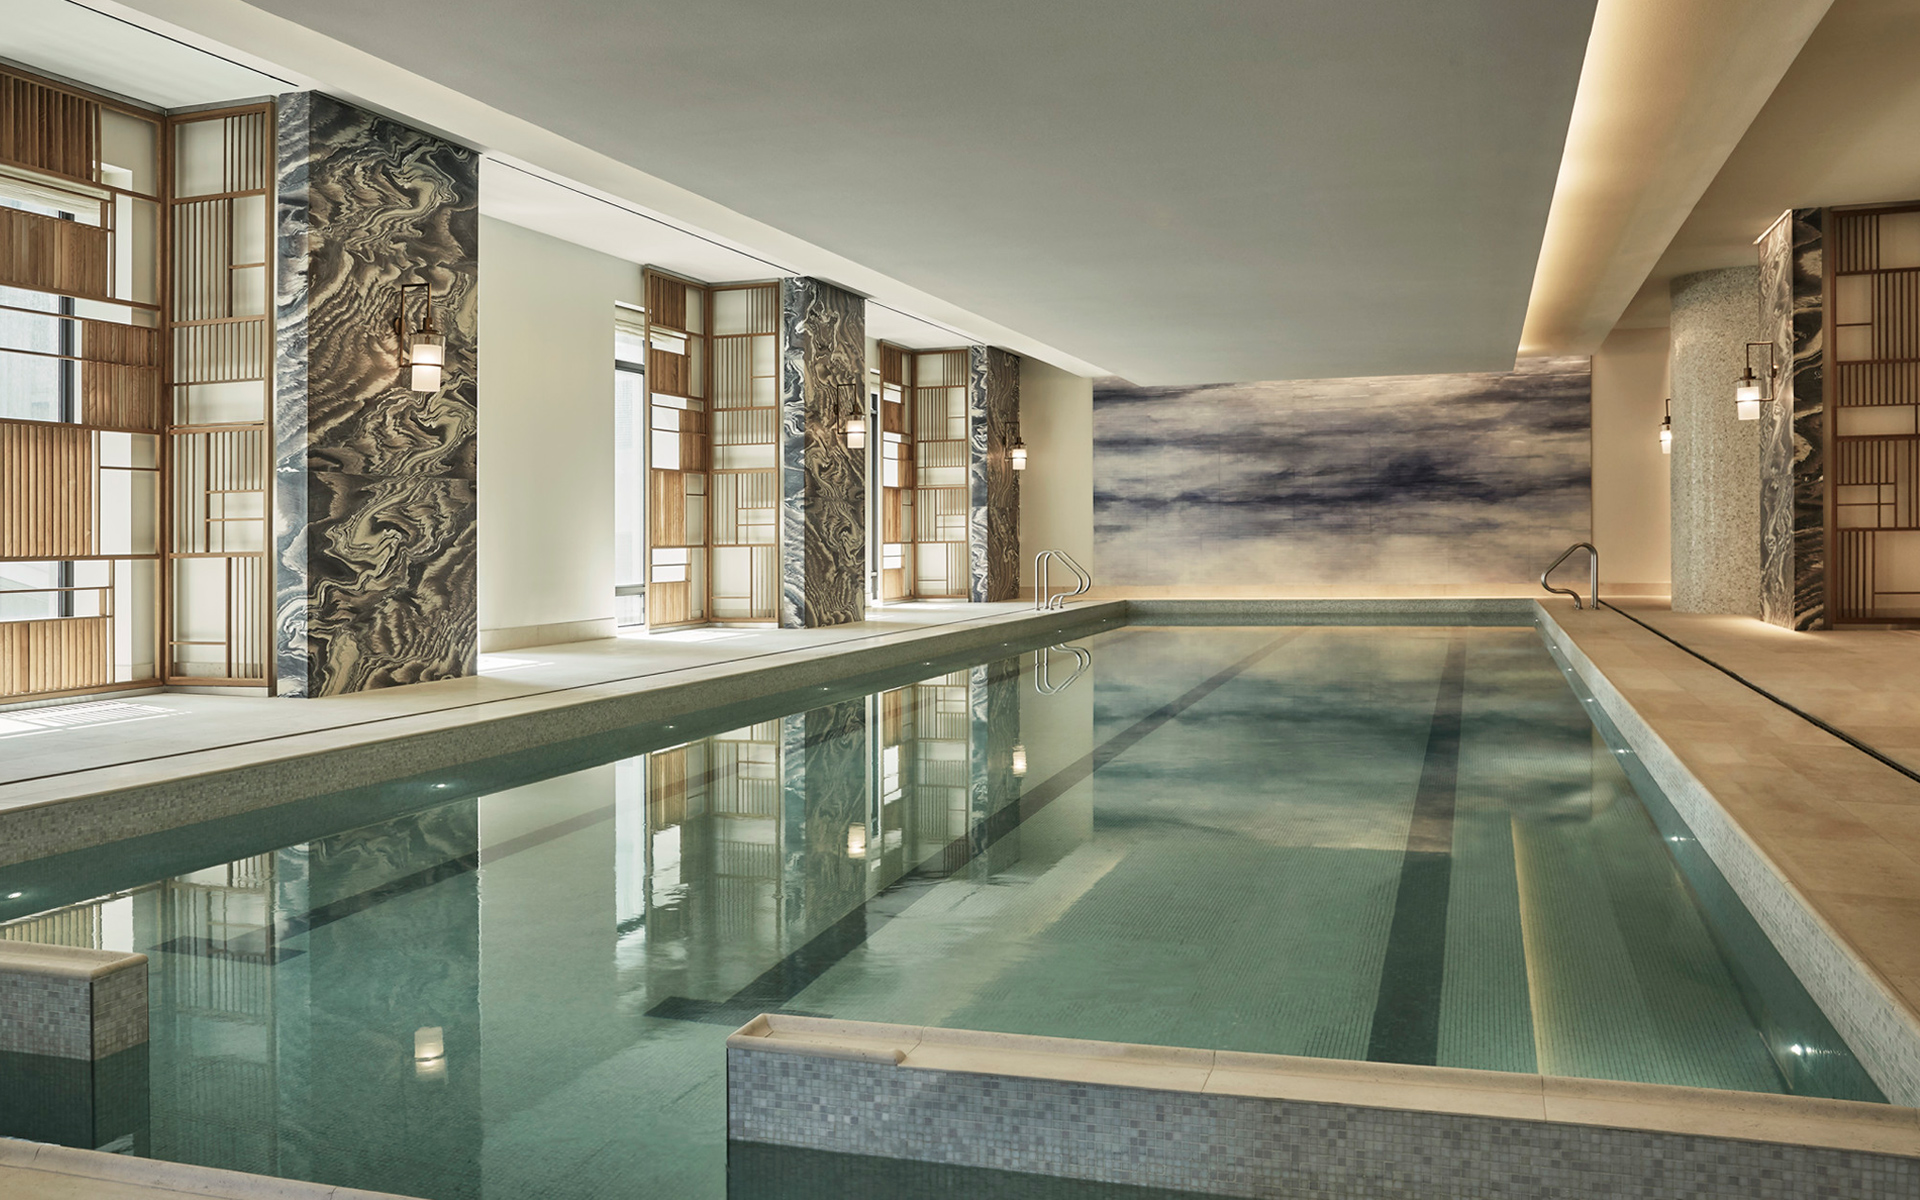 At 30 Park Place, handsomely appointed amenities serve as an extension of your own home and include a sunlit 75-foot pool with adjacent steam rooms and luxurious Four Seasons spa.